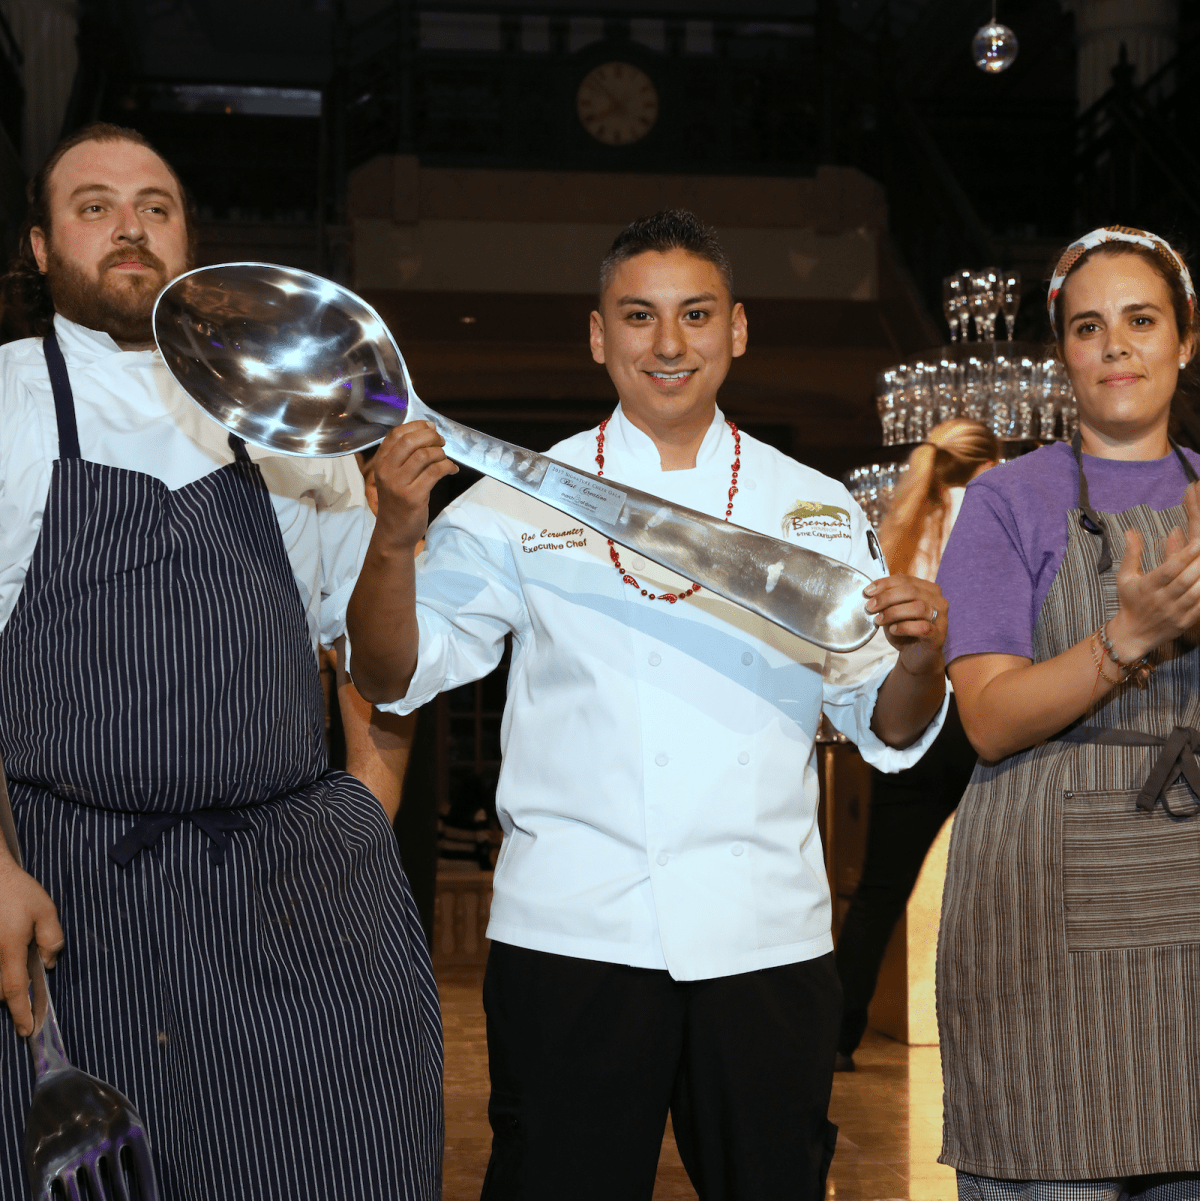 Houston, March of Dimes Signature Chefs, November 2017, executive chef Joe Cervantez of Brennan's